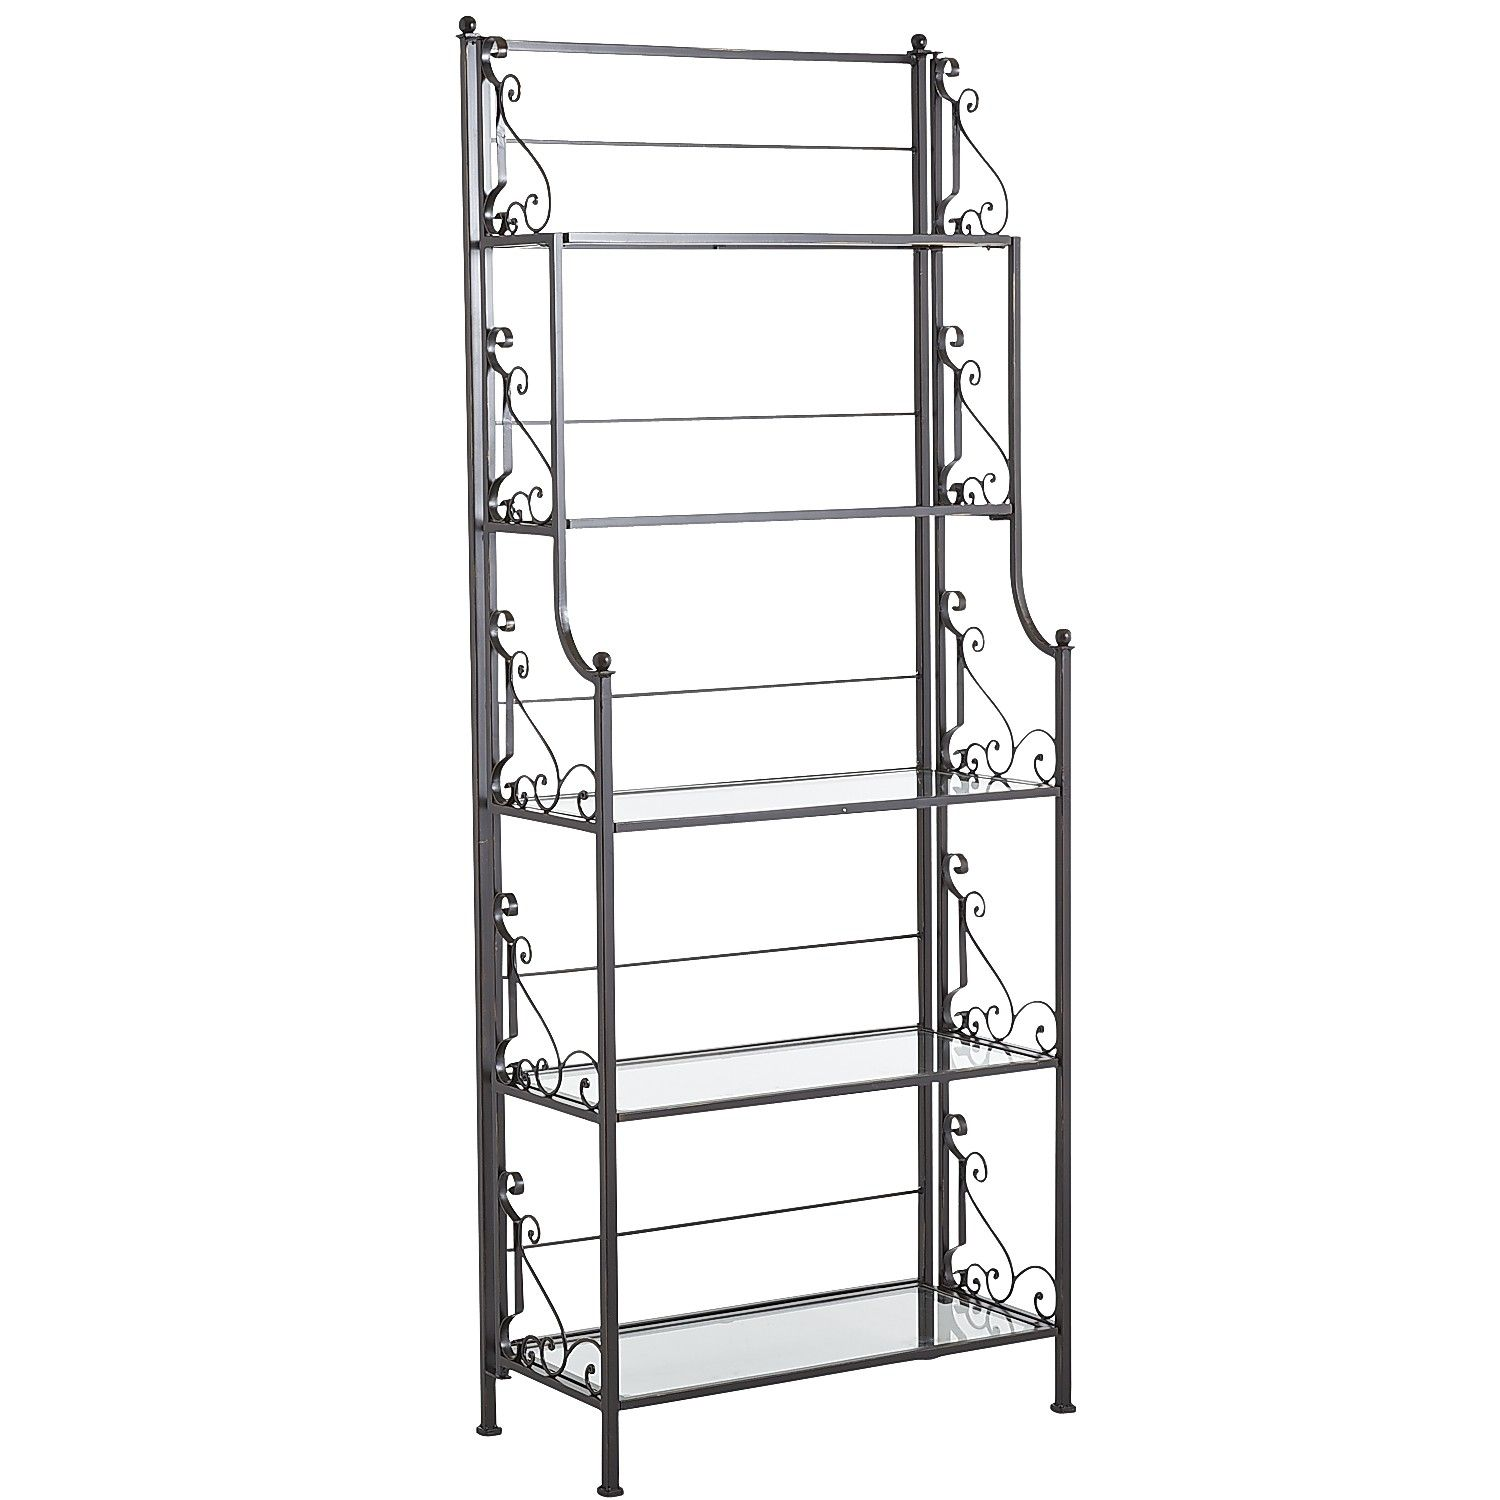 Pier One Bakers Rack: Wrought Iron Scroll Bakers Rack - Burnt Umber